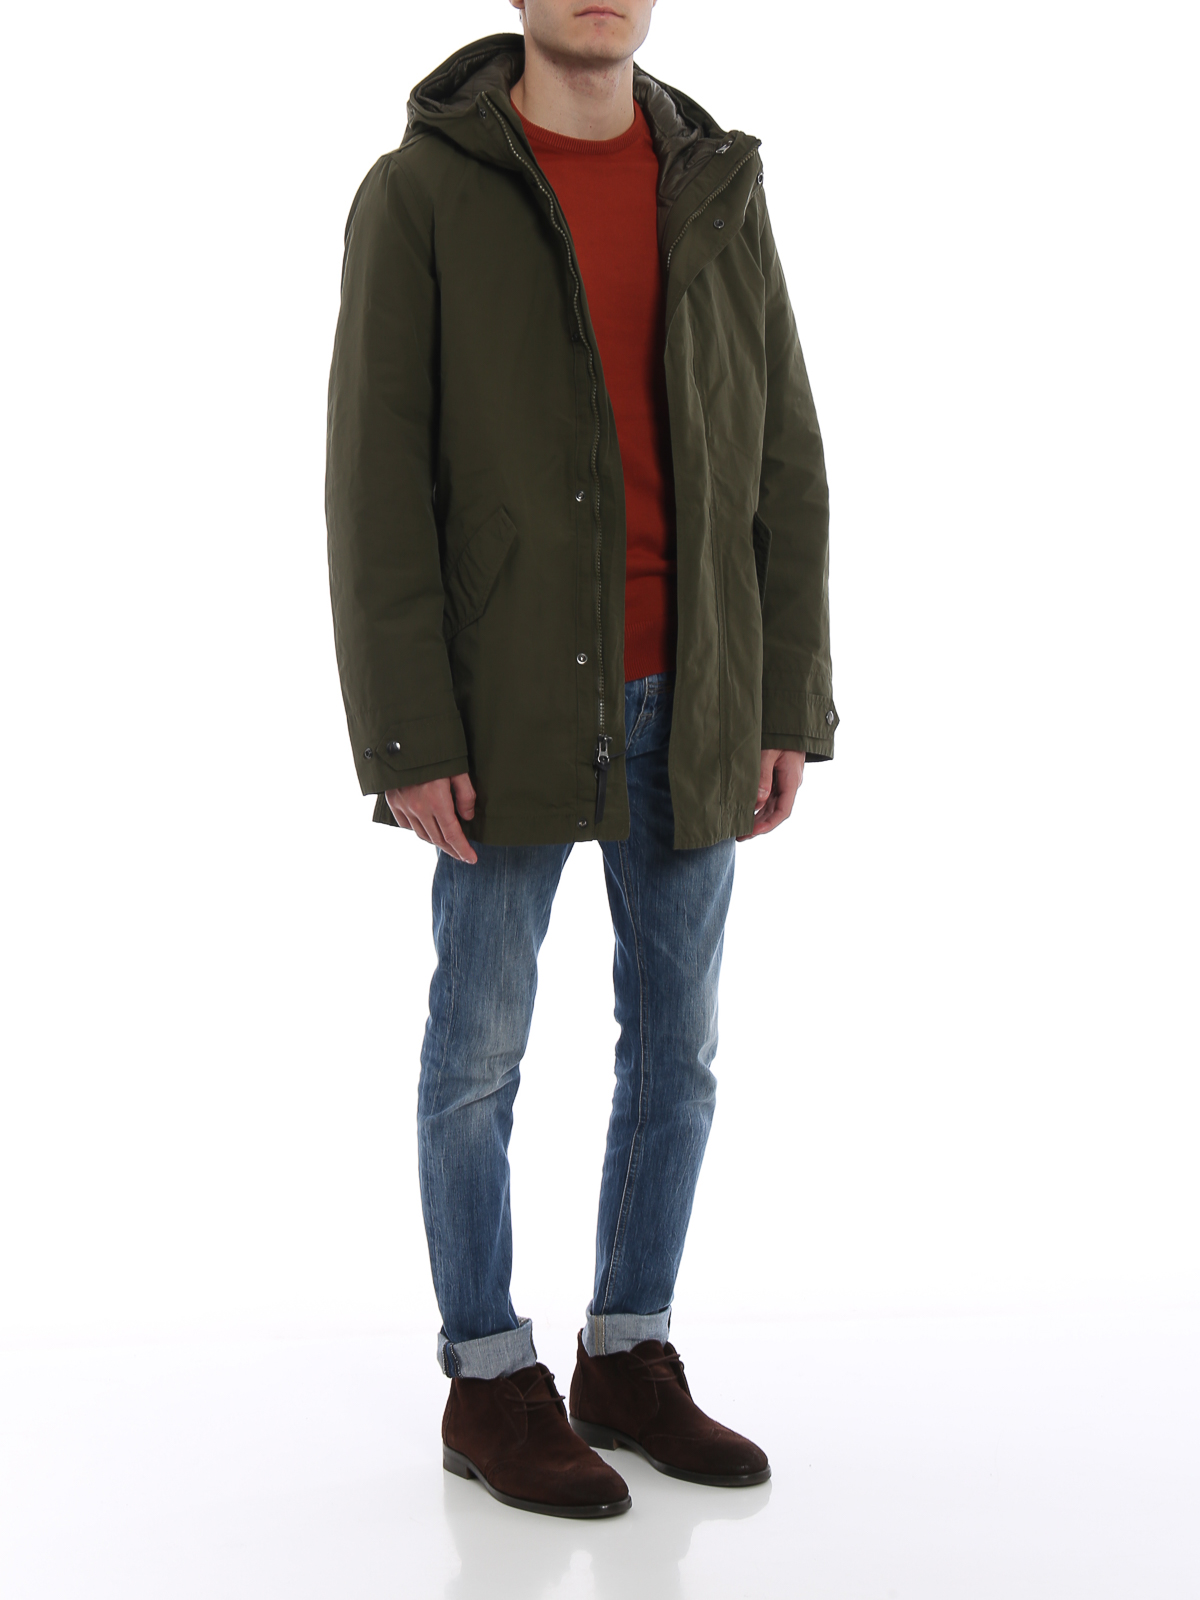 huge discount 07817 eda0d Two Wax Parka One Woolrich Green In Parkas Army Mountain ...